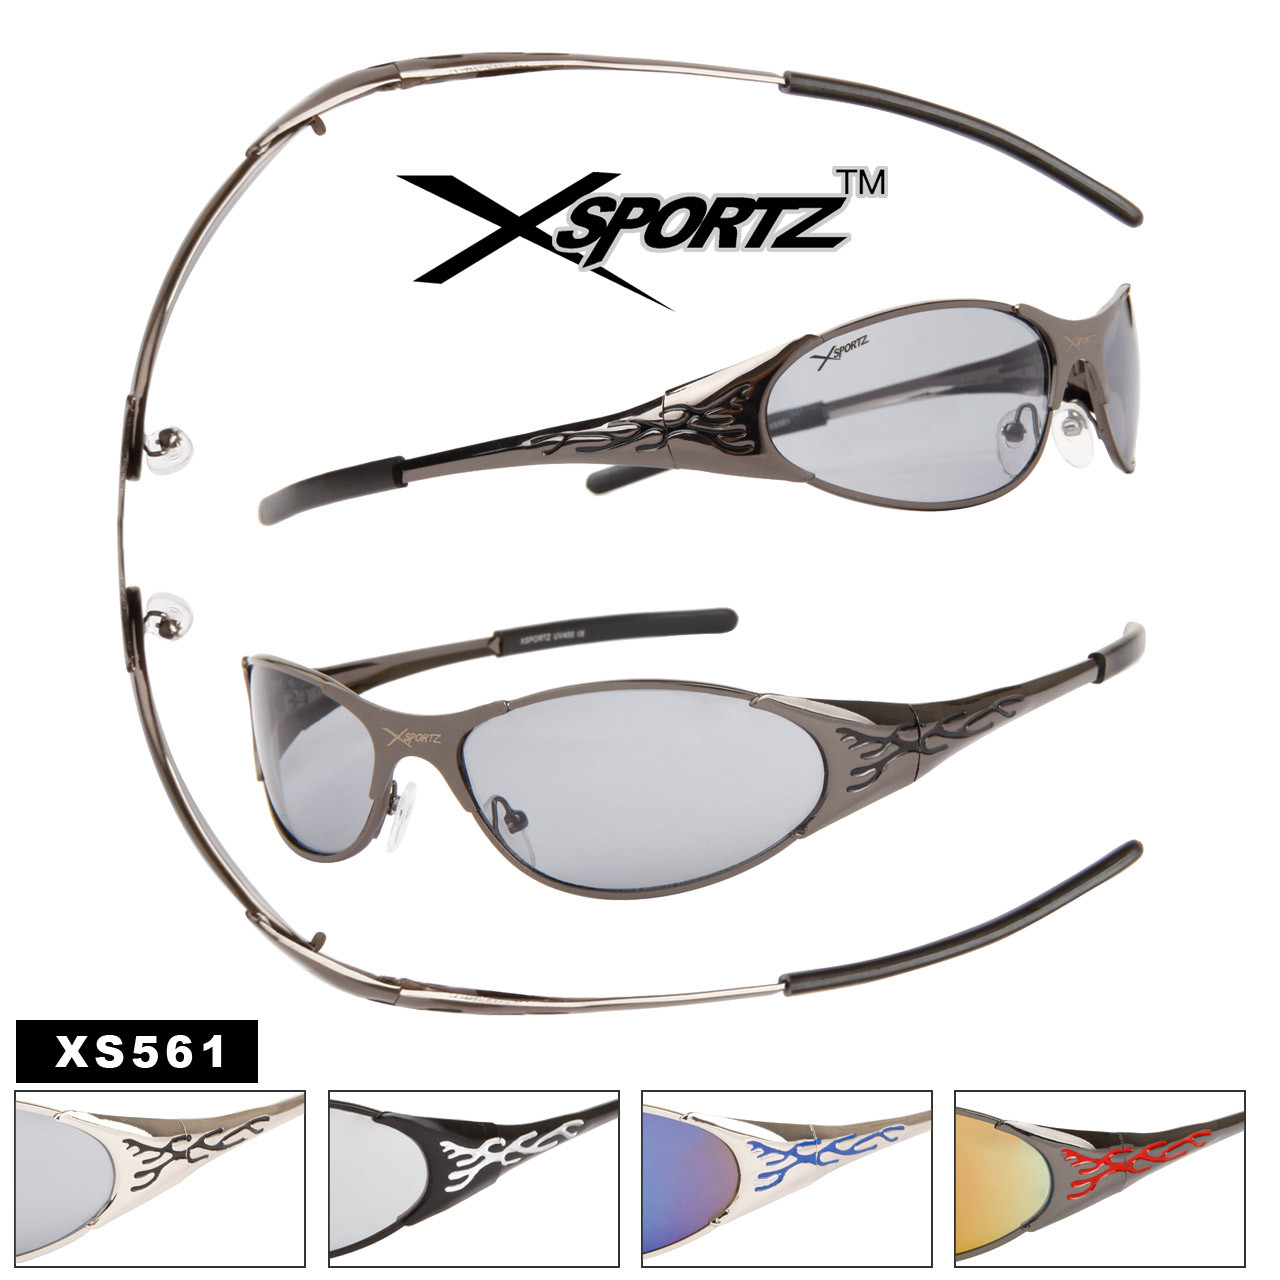 Xsportz™ Wholesale Sport Sunglasses with Spring Hinges - Style # XS56